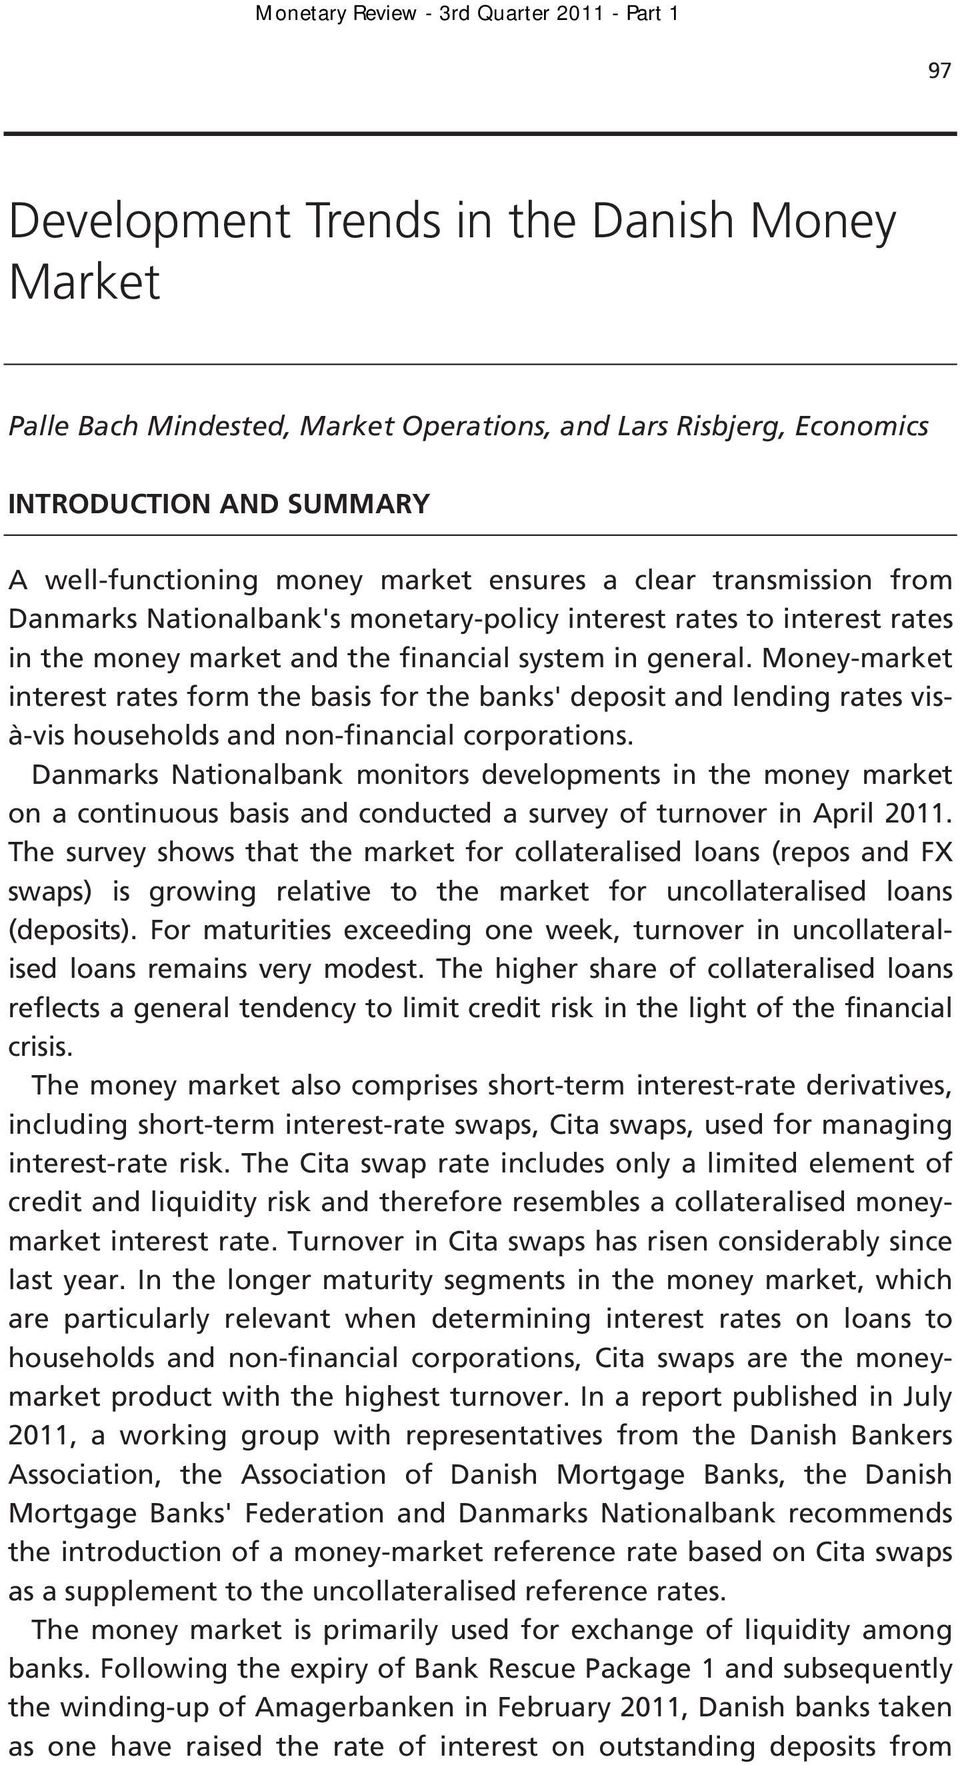 Money-market interest rates form the basis for the banks' deposit and lending rates visà-vis households and non-financial corporations.